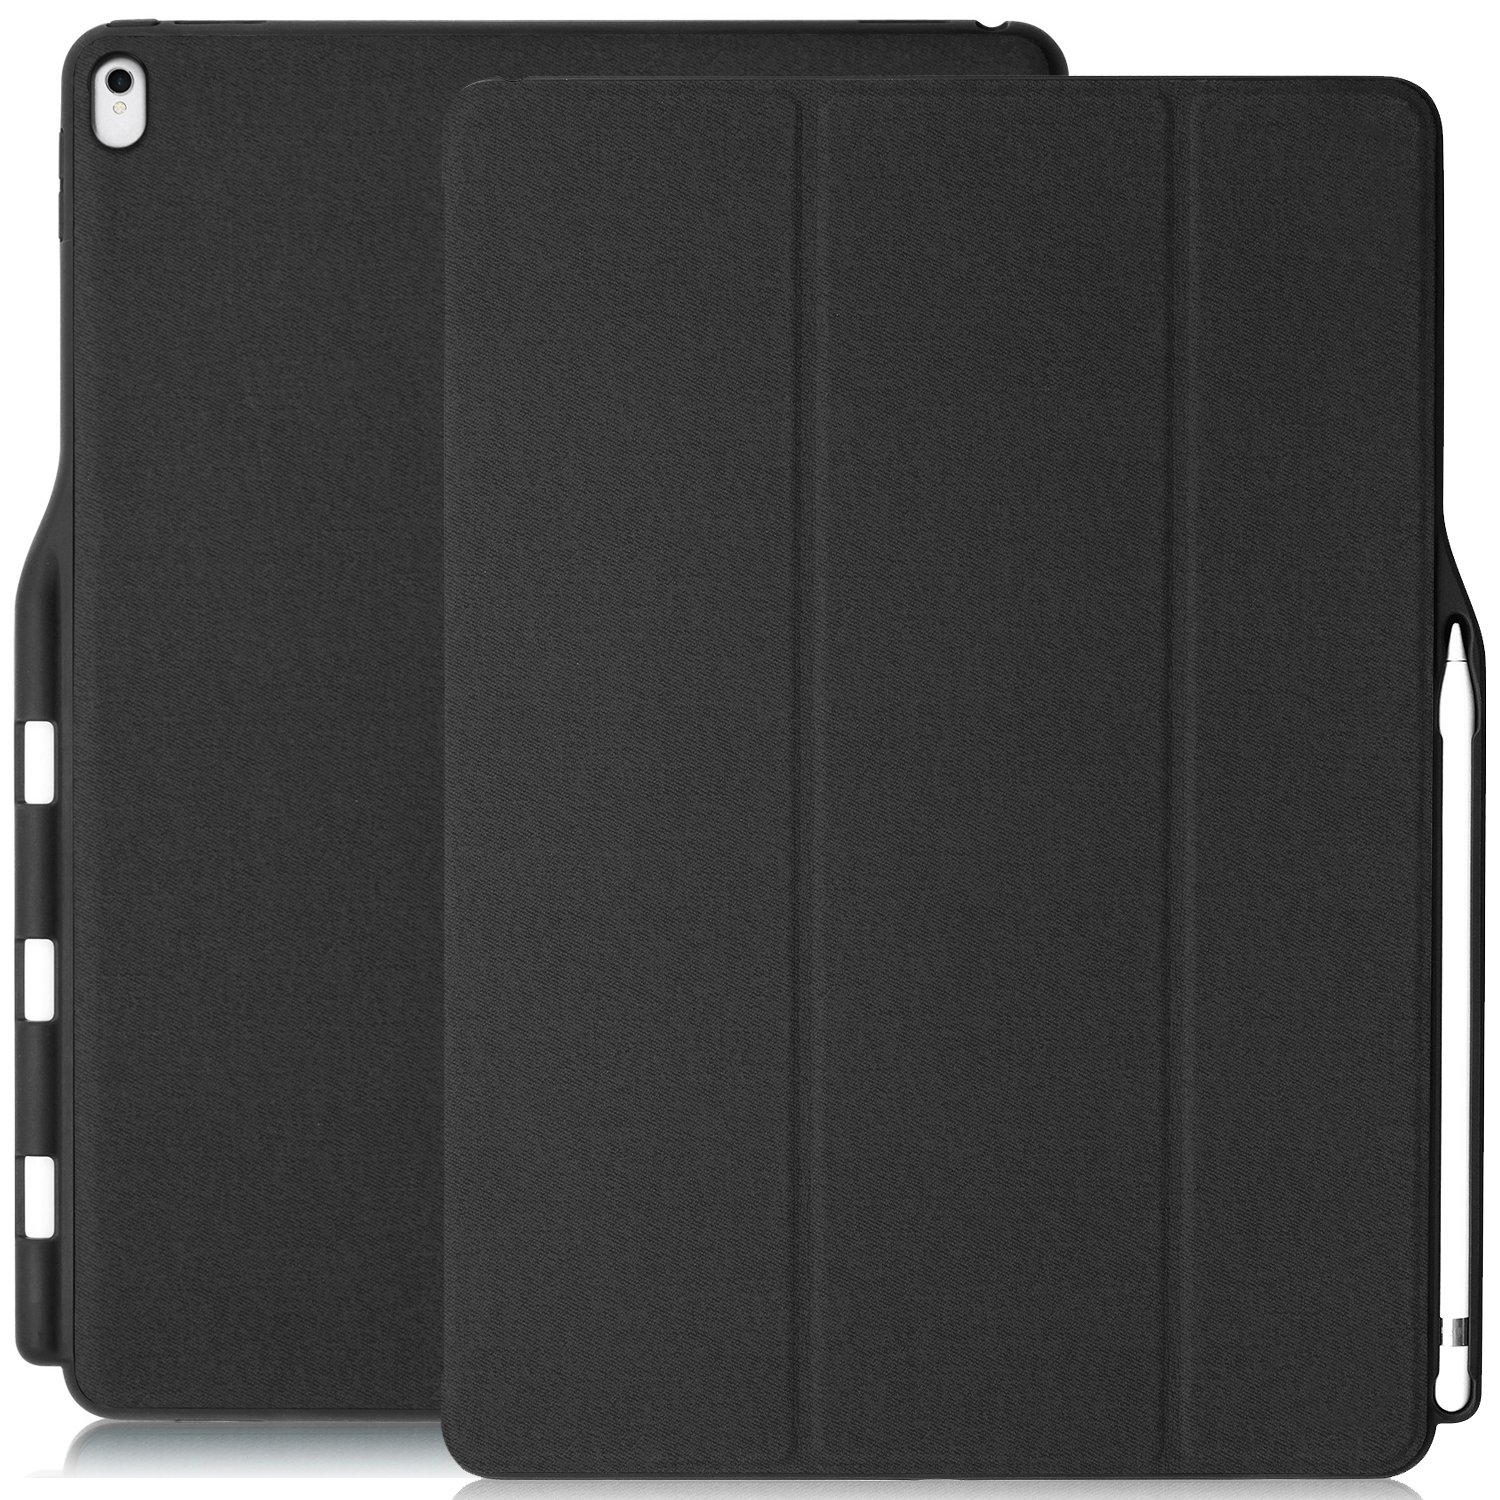 buy online d2ac5 48d62 Details about iPad Pro 12.9 Inch Case with Pen Holder - DUAL Charcoal Gray  Super Slim Cover